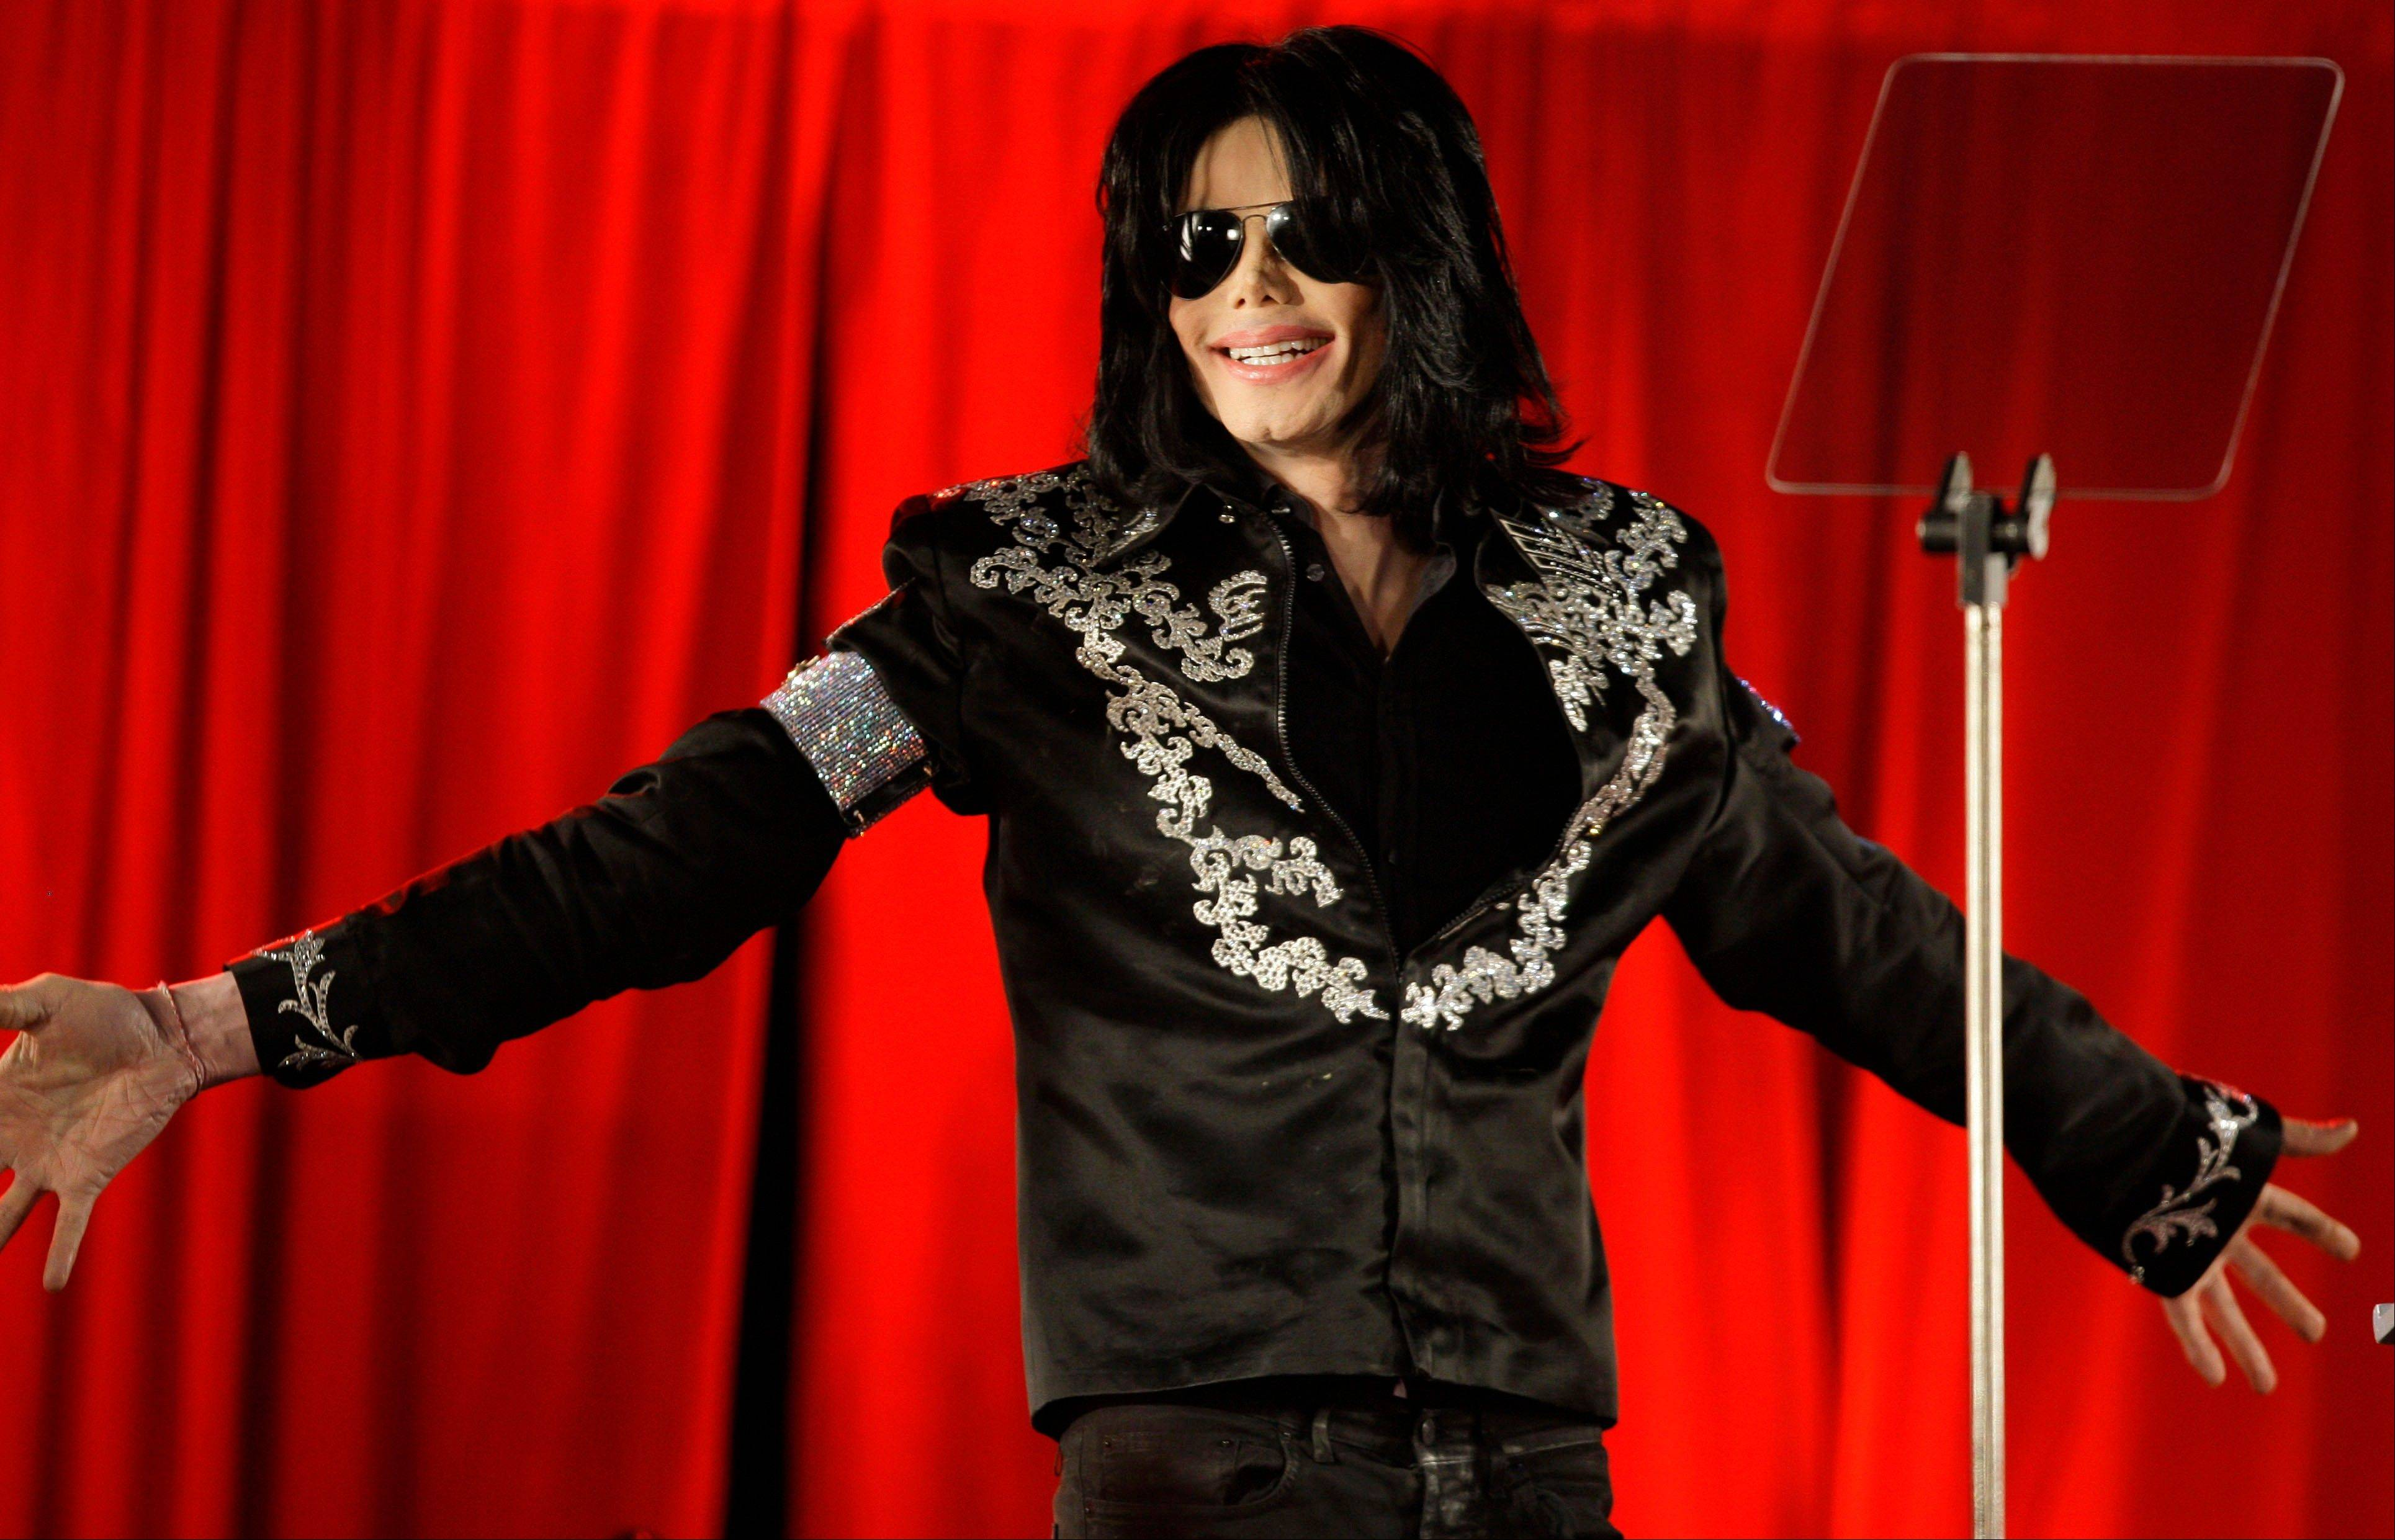 Pop superstar Michael Jackson, who died June 25, 2009, would have turned 55 this year.